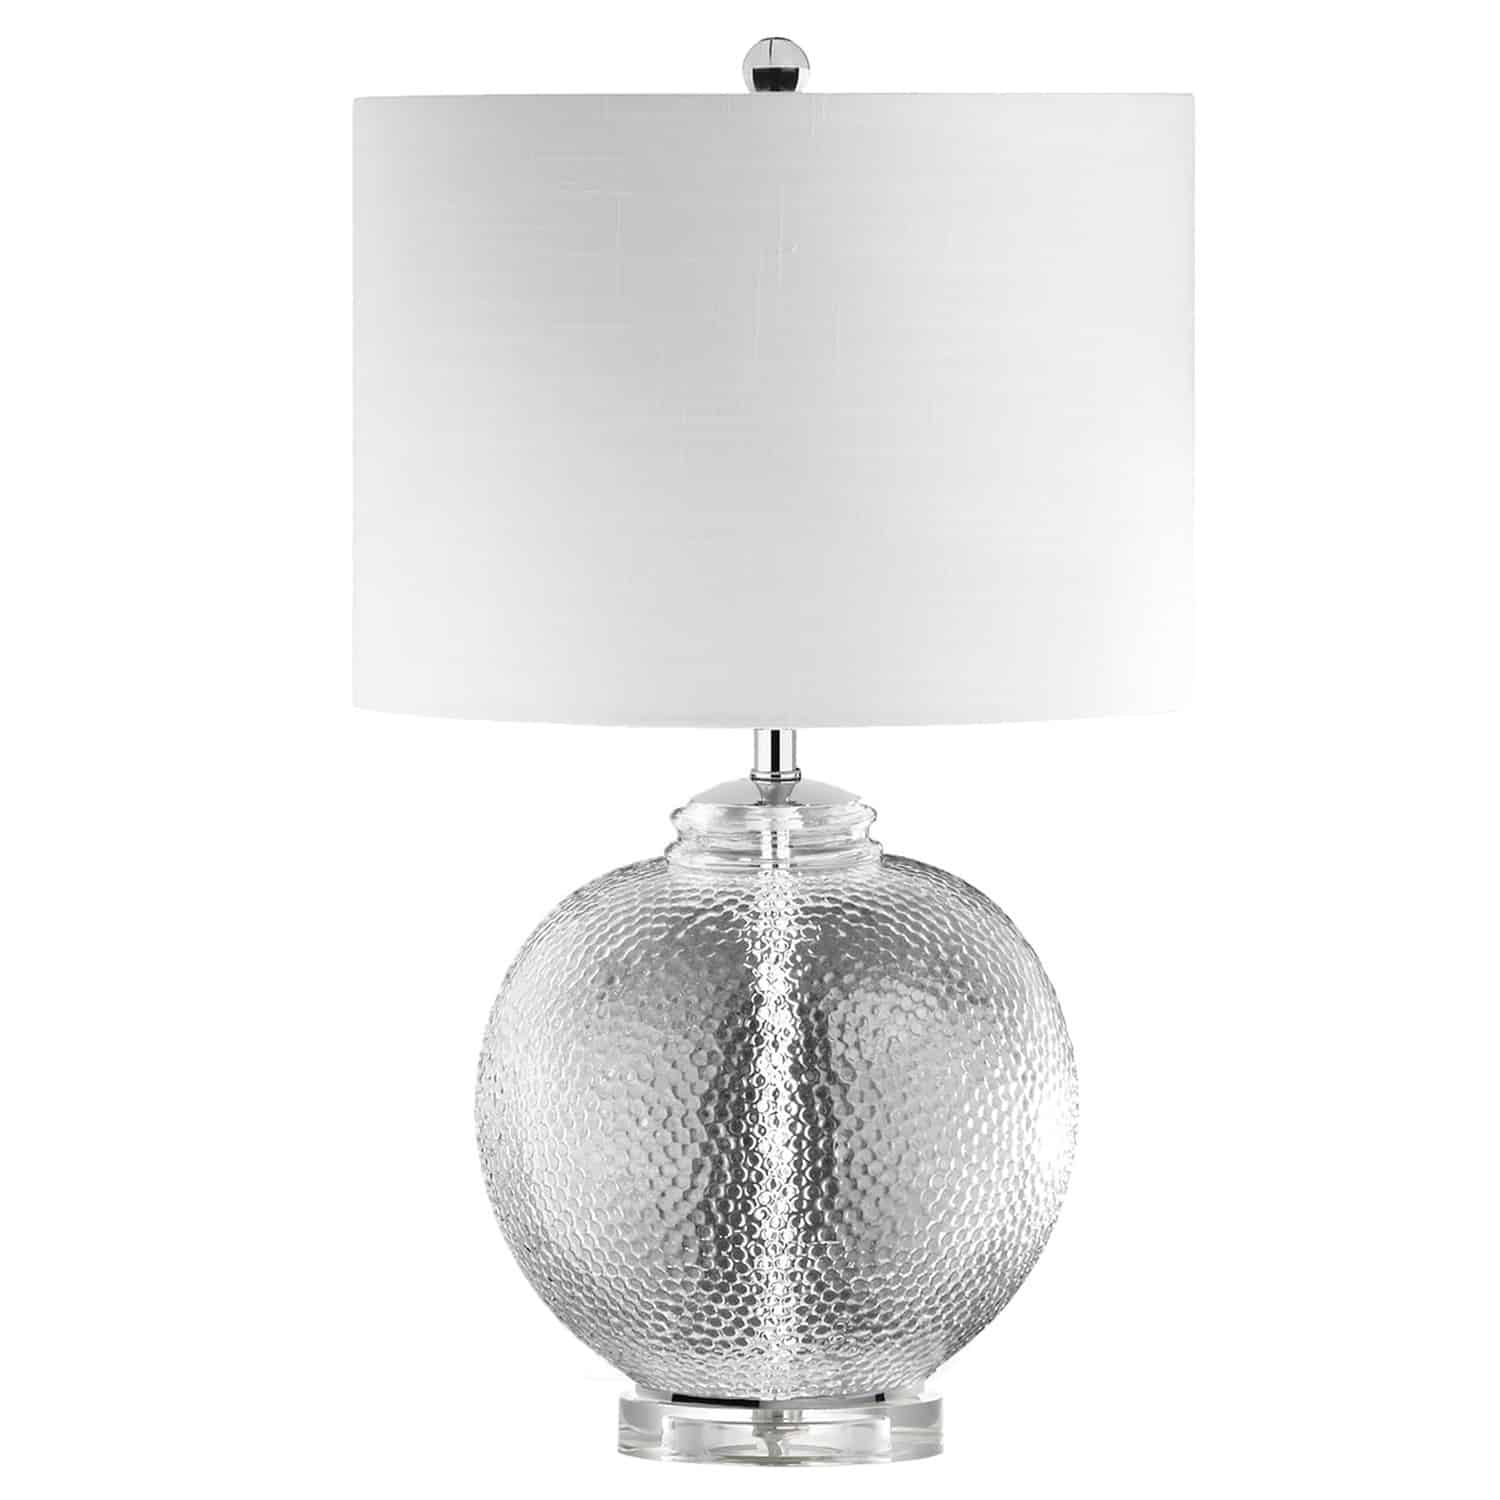 1 Light Incandescent Glass Table Lamp with White Shade